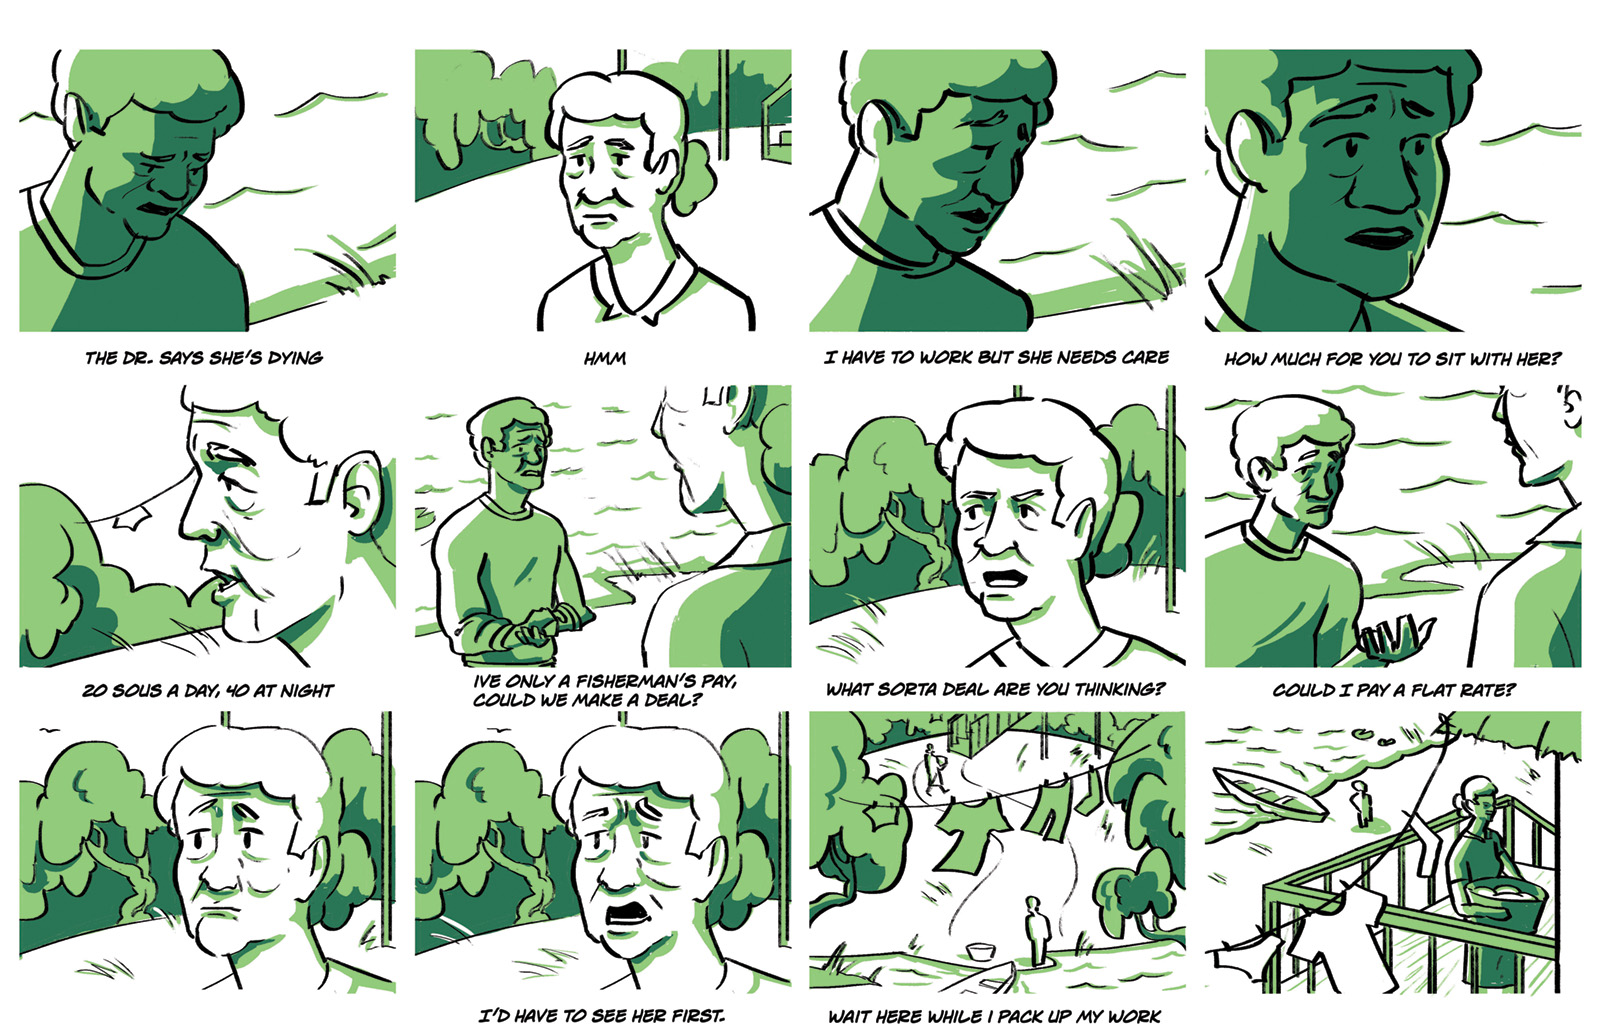 Third storyboard. Honore asks for help but at a flat rate. The two barter before La Rapet agrees to inspect the mother.